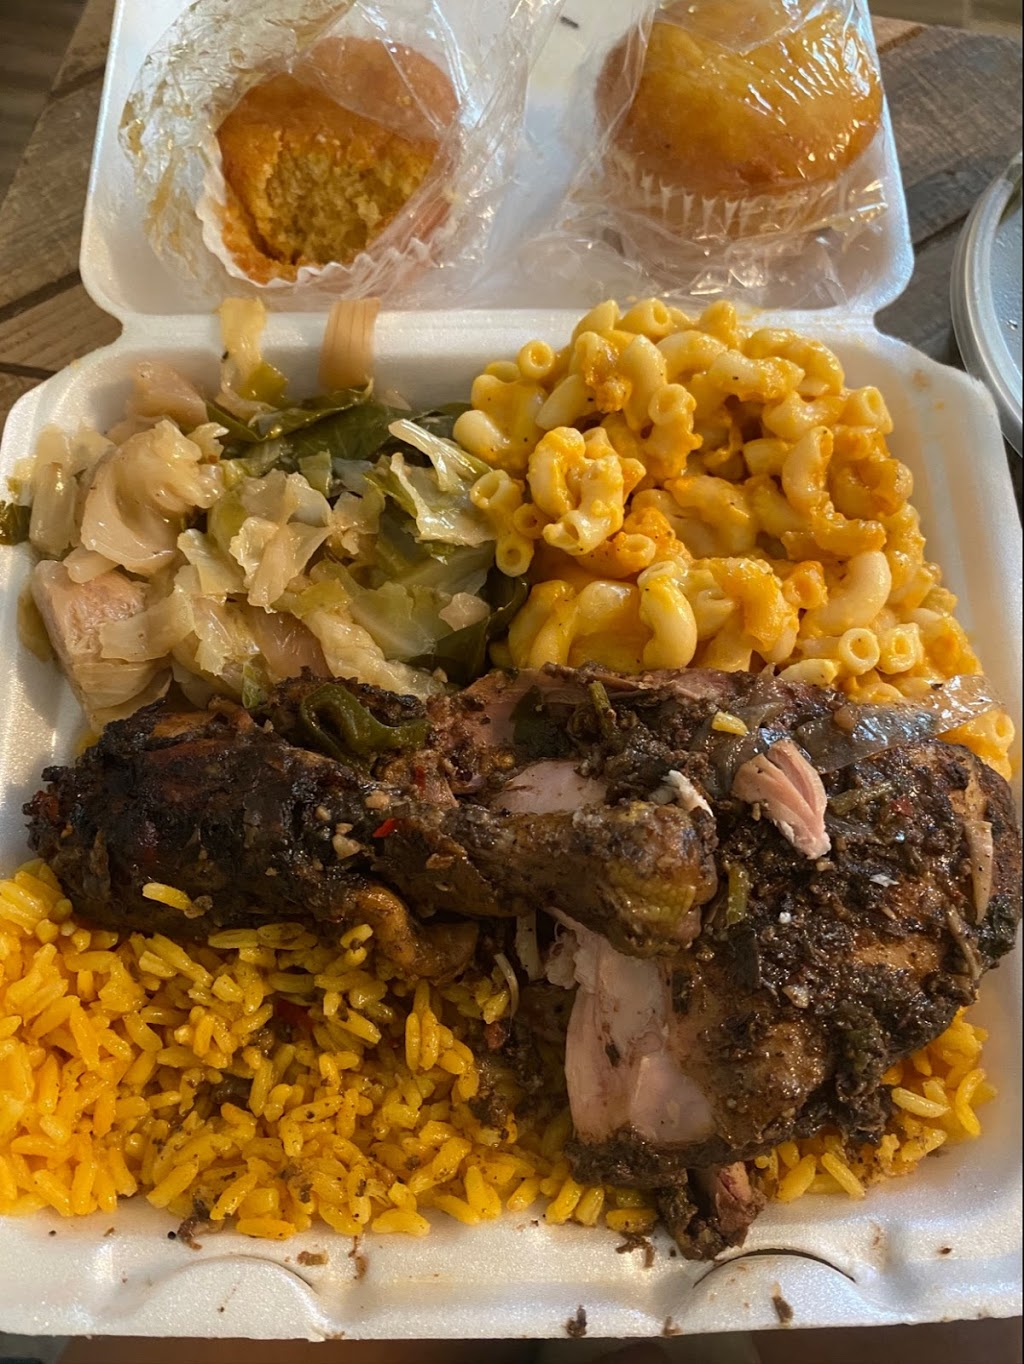 Lillie Maes Southern Cafe - meal takeaway    Photo 3 of 6   Address: 3745 N 50th St, Tampa, FL 33619, USA   Phone: (813) 544-4188